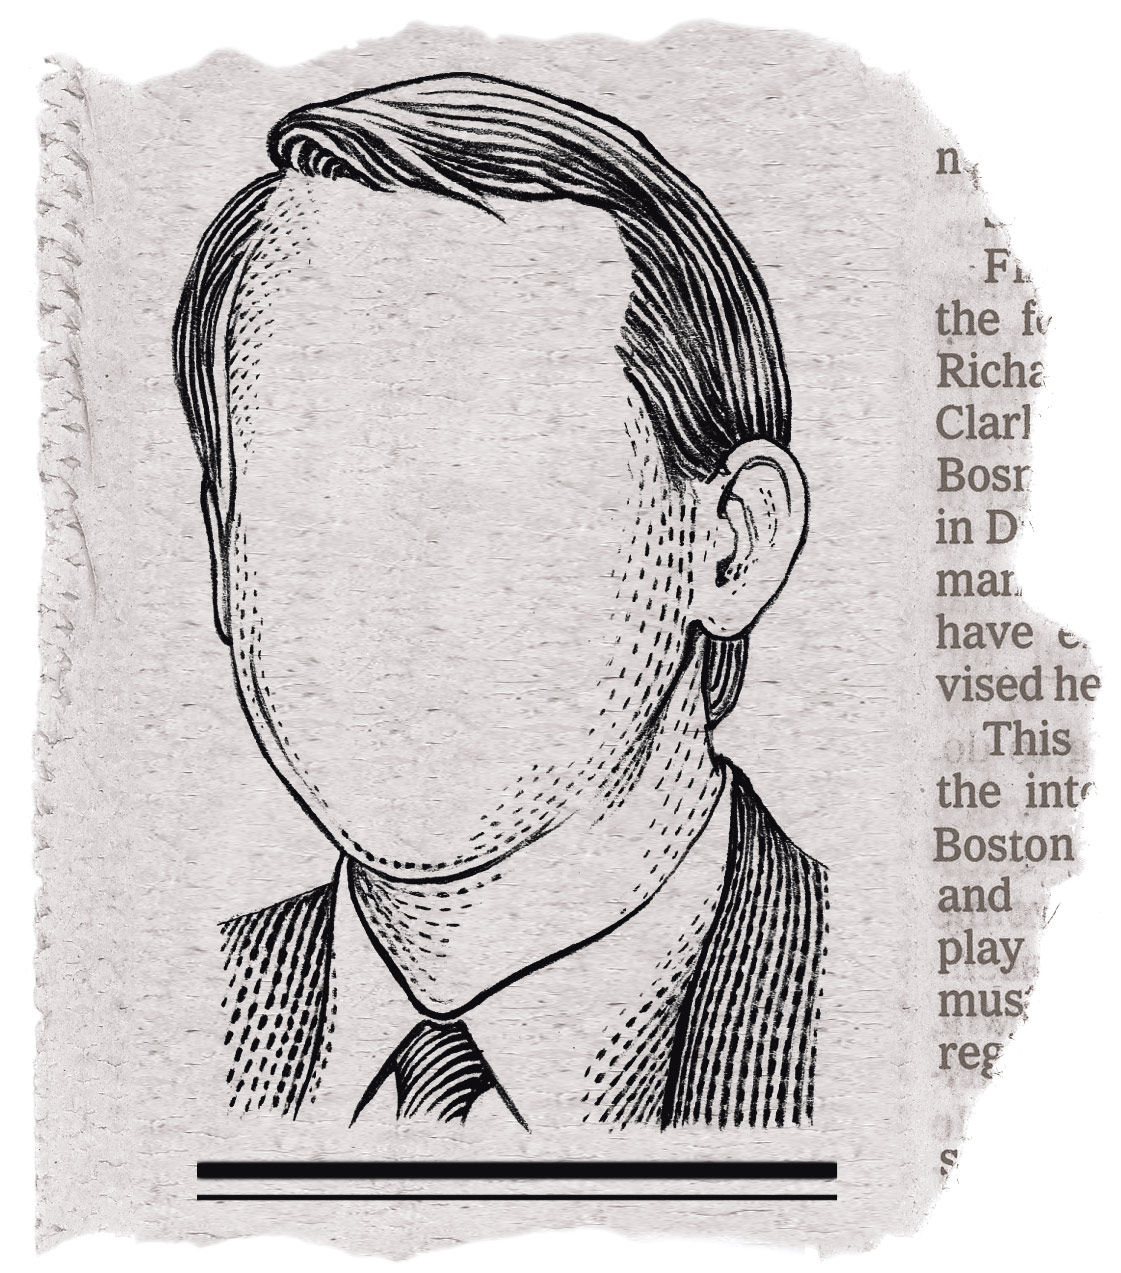 Illustration by Joe McKendry